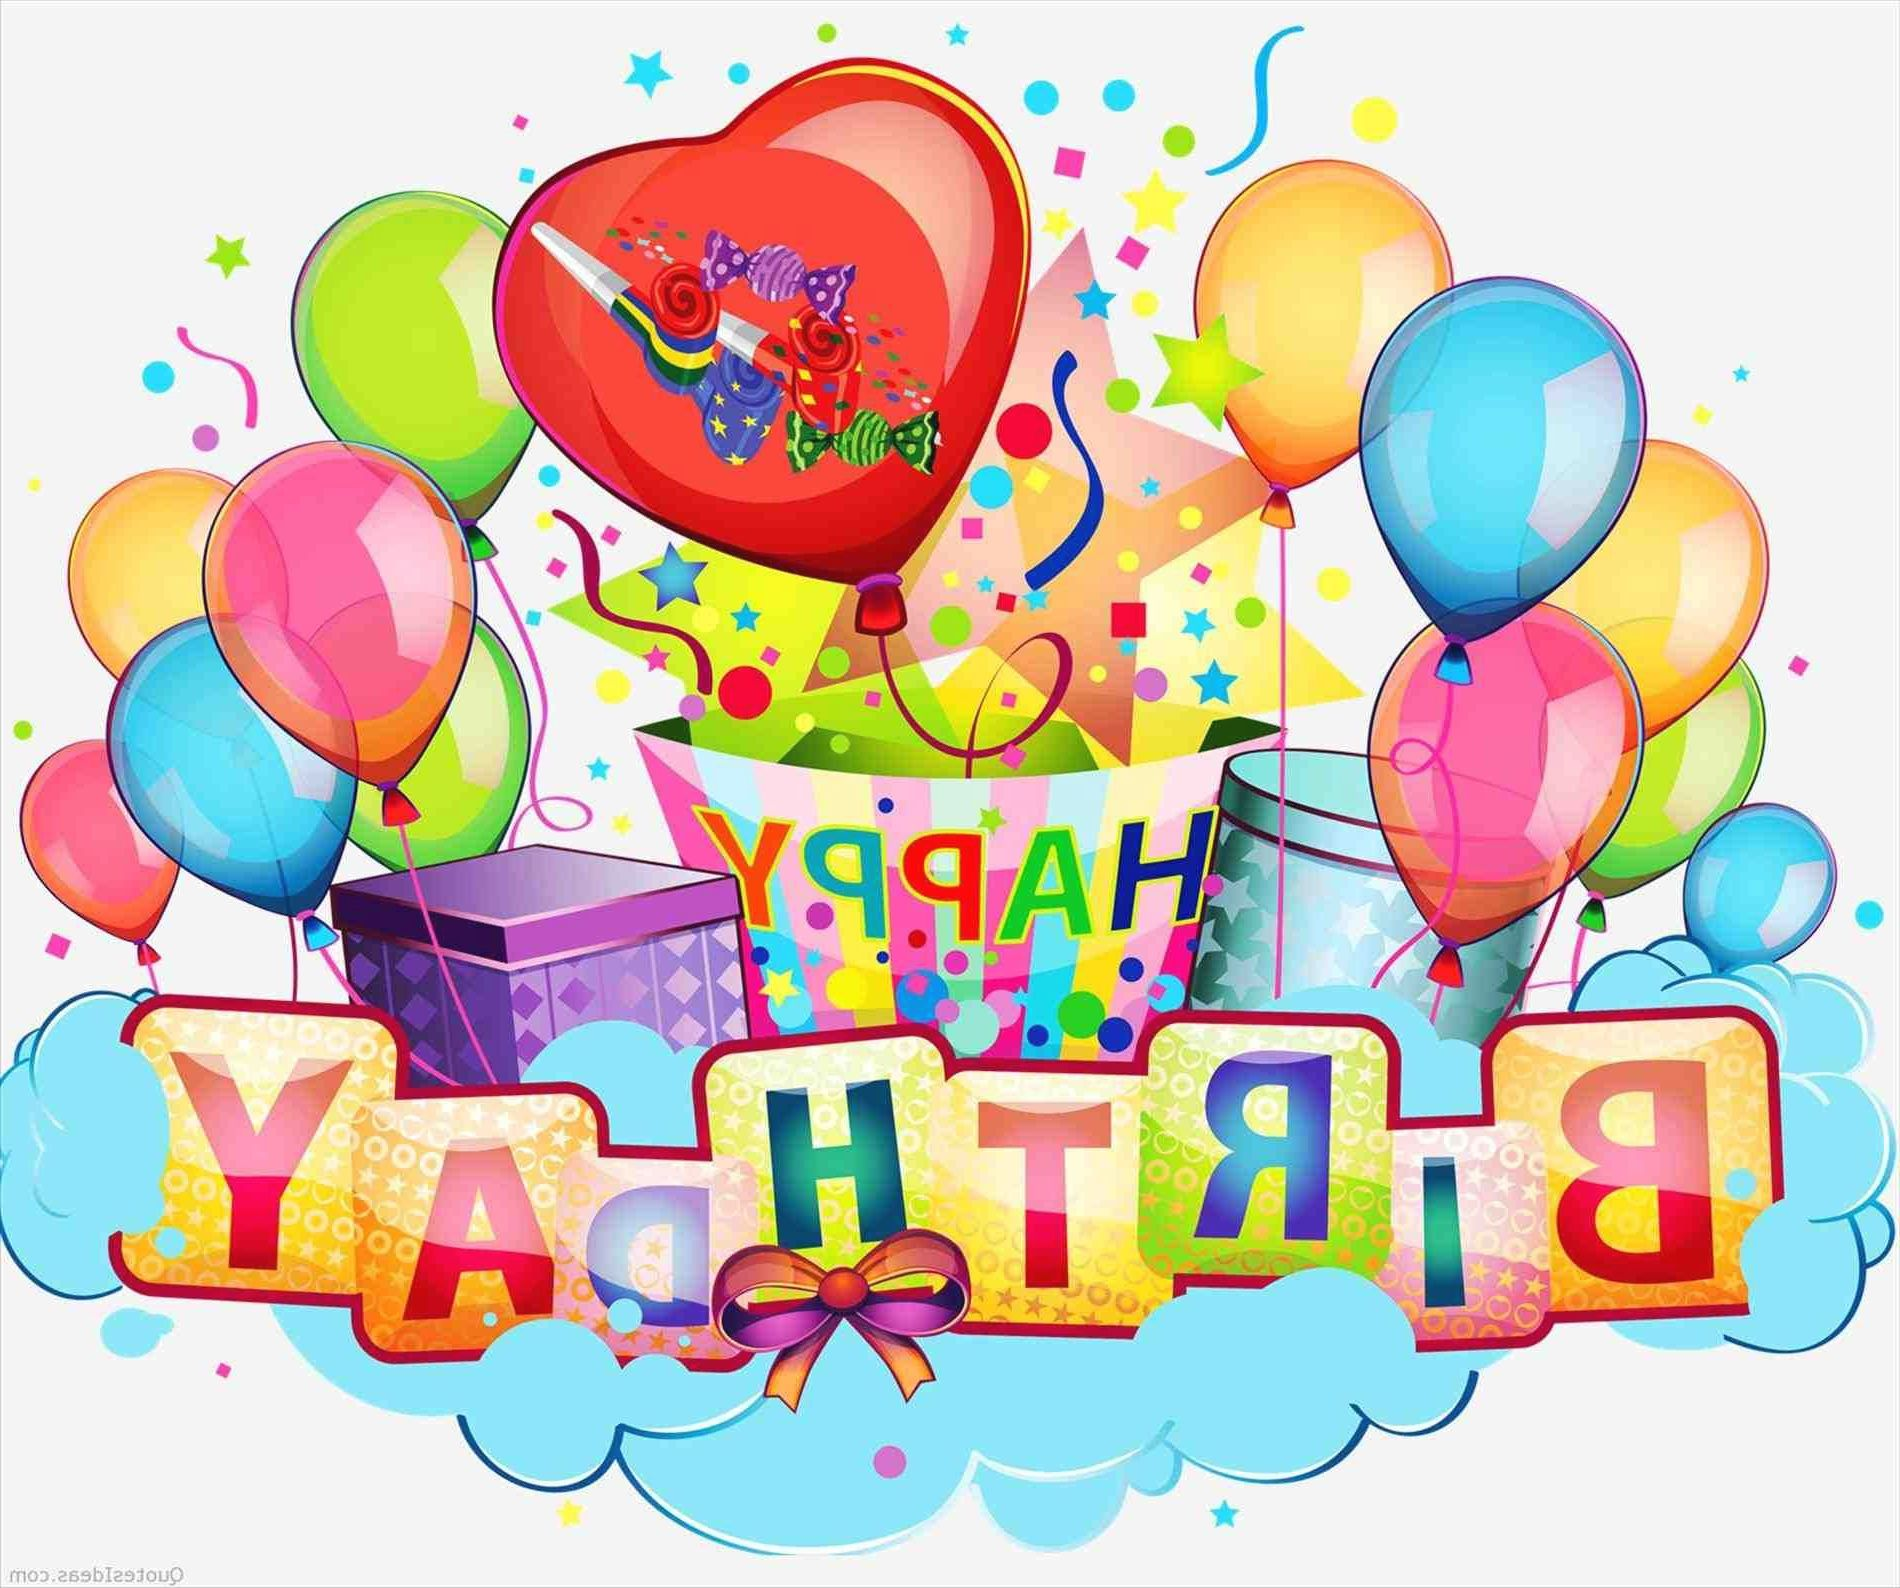 Download Amazing Of Animated Happy Birthday Images With Music Happy Birthday Cards Online Free Birthday Card Birthday Card Online